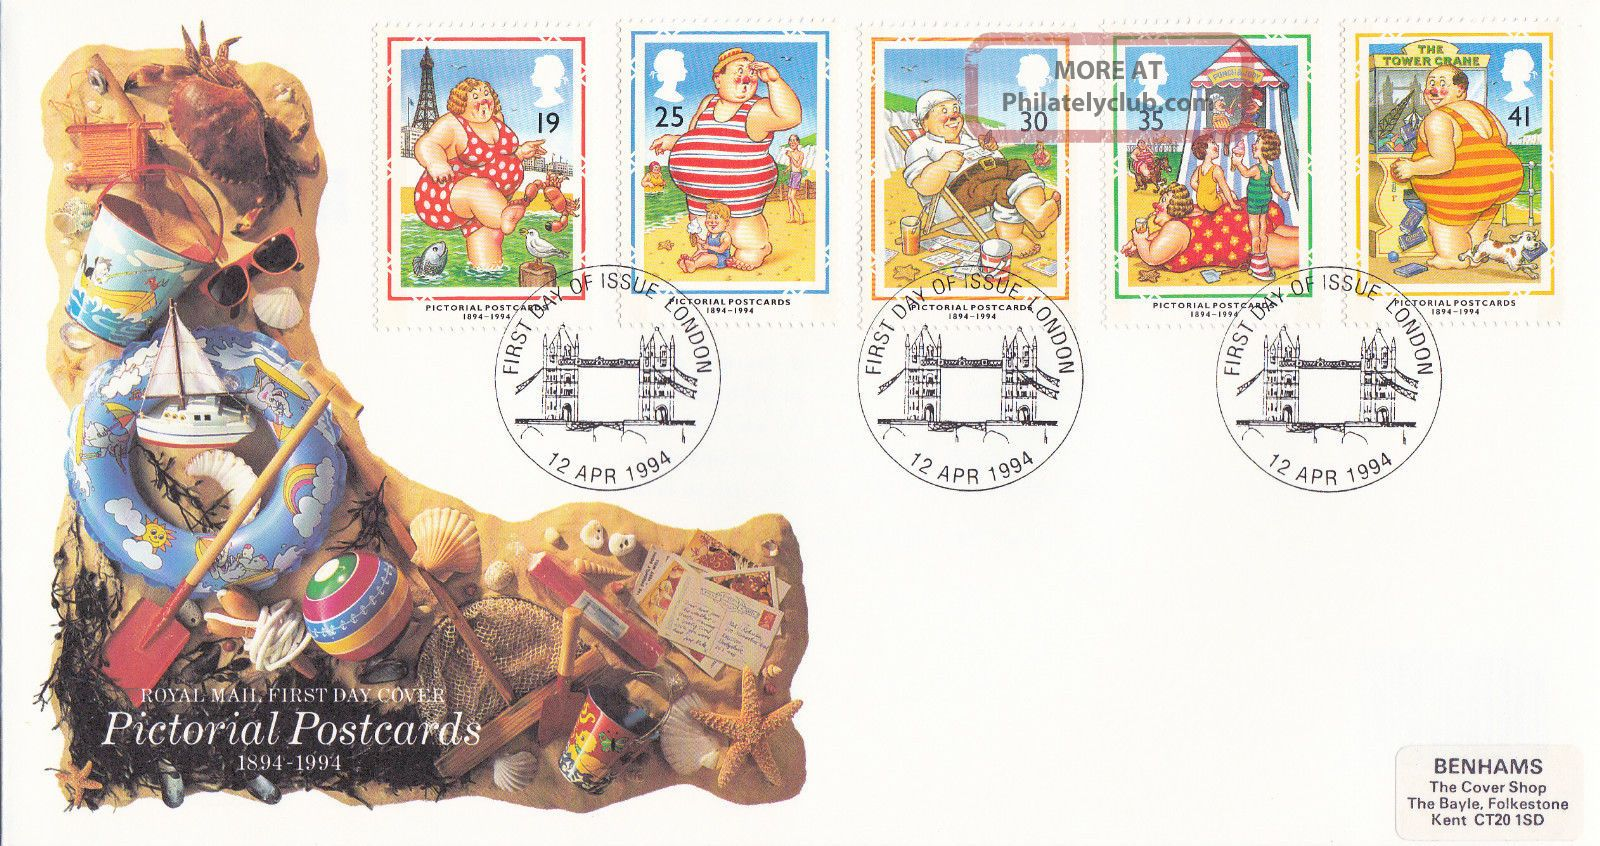 12 April 1994 Picture Postcards Royal Mail First Day Cover London Shs Topical Stamps photo